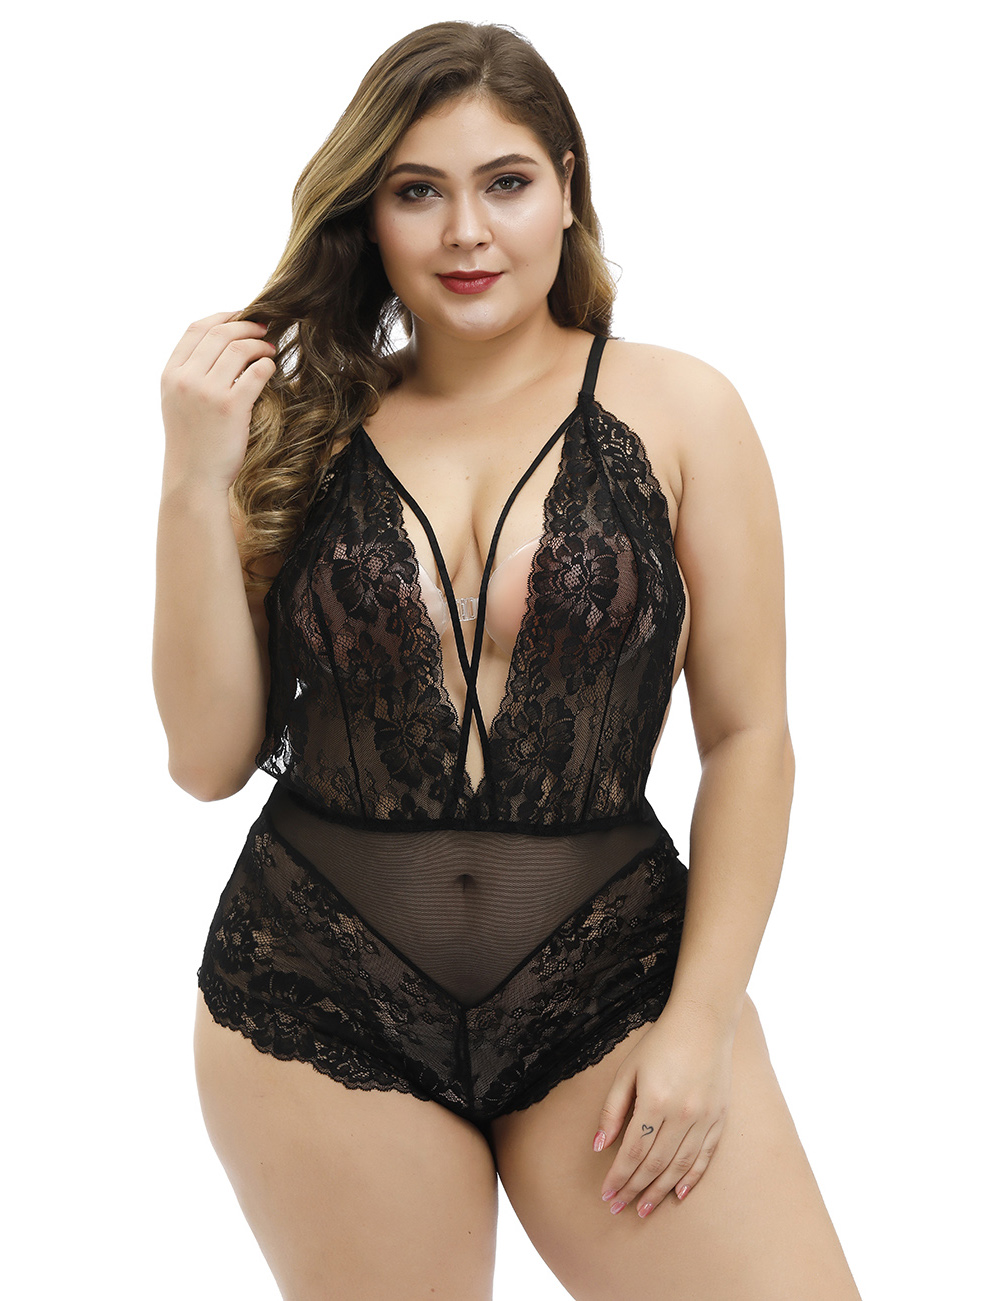 //cdn.affectcloud.com/hexinfashion/upload/imgs/PLUS_SIZE_CLOTHING/Plus_Size_Lingerie/SY190194-BK1/SY190194-BK1-202001075e1423f135fc9.jpg